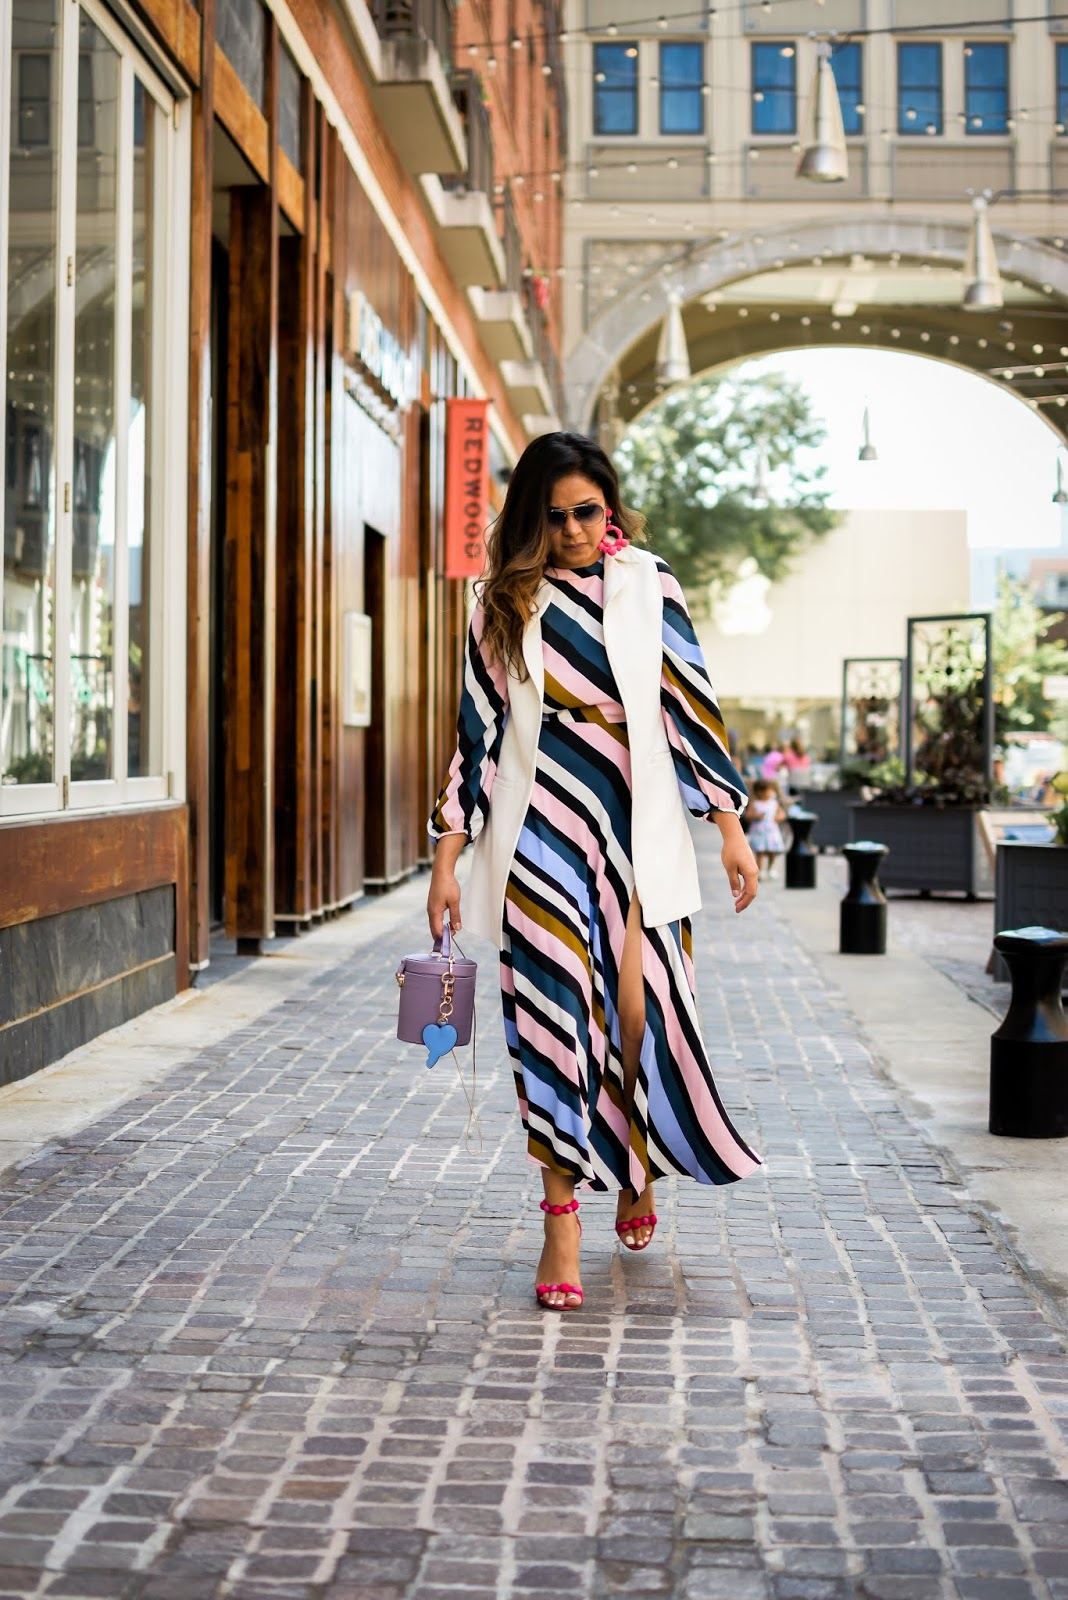 topshop stripe dress, front slit dress nordstrom, under $100 dress, fall dresses, white vest, gillet style, sam edleman pink beaded heels, fall ootd, fall fashion, dc blogger, statement earrings, myriad musings